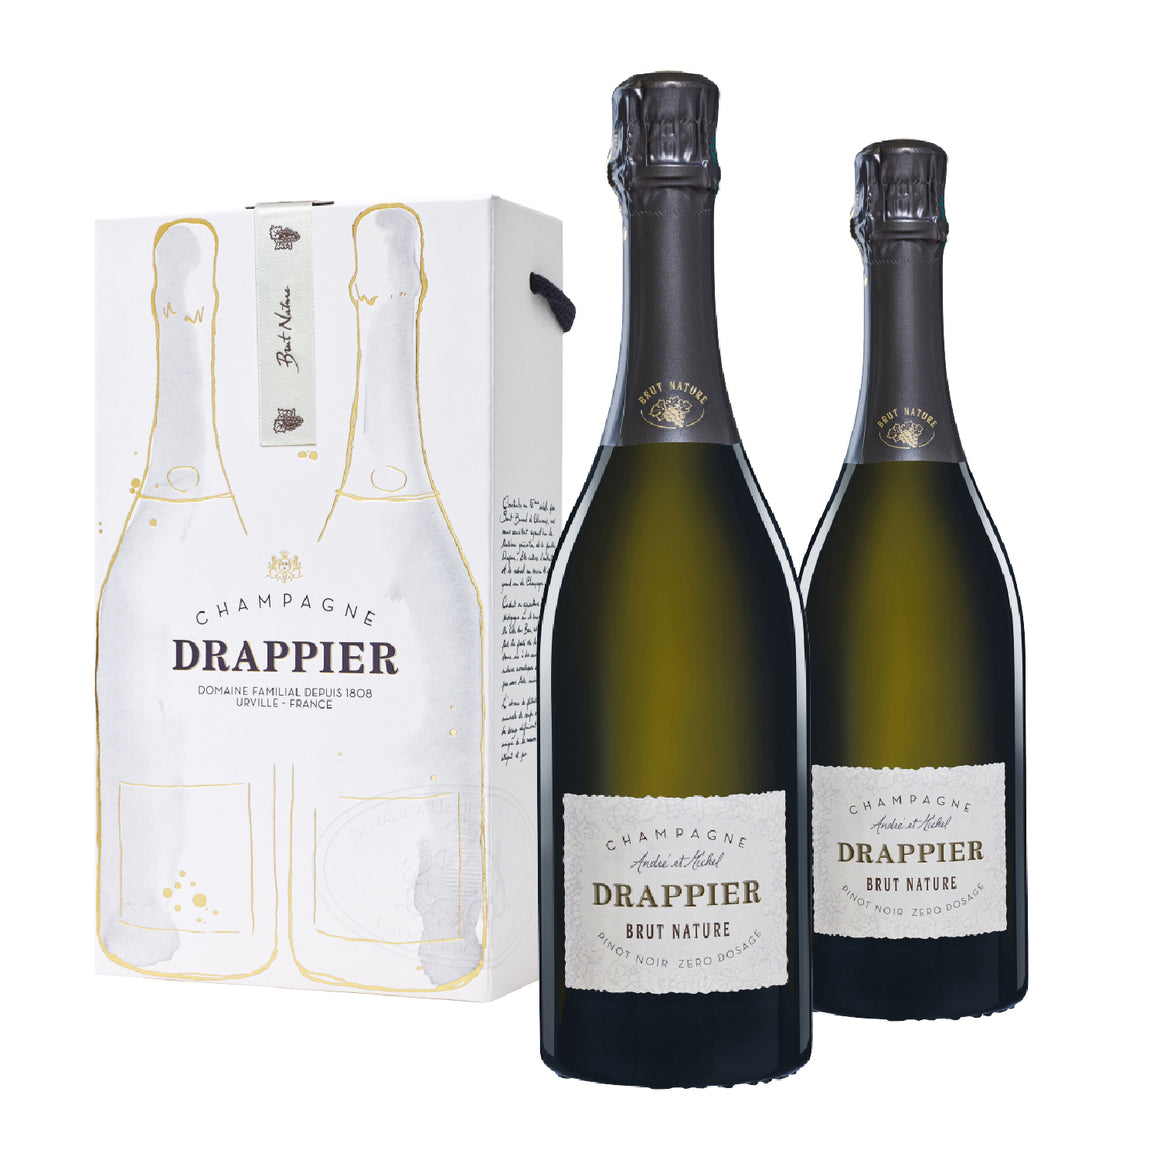 CHAMPAGNE DRAPPIER BRUT NATURE ZERO DOSAGE TWIN GIFT BOX SET